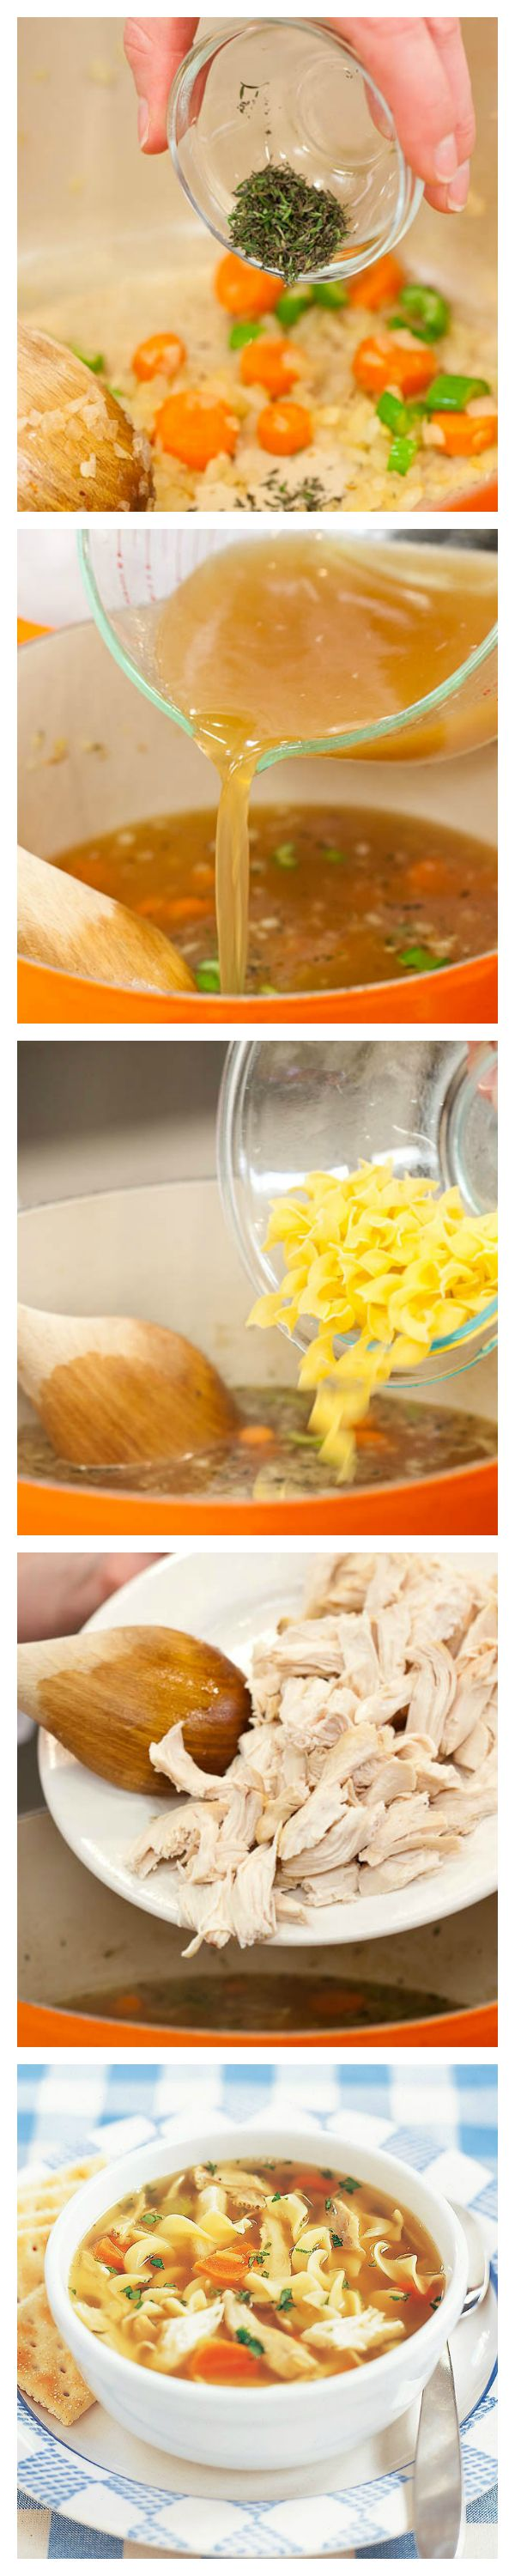 A solid foundation leads to the best results. Let our Online Cooking School show you the basic skills for making Old-Fashioned Chicken Noodle Soup.